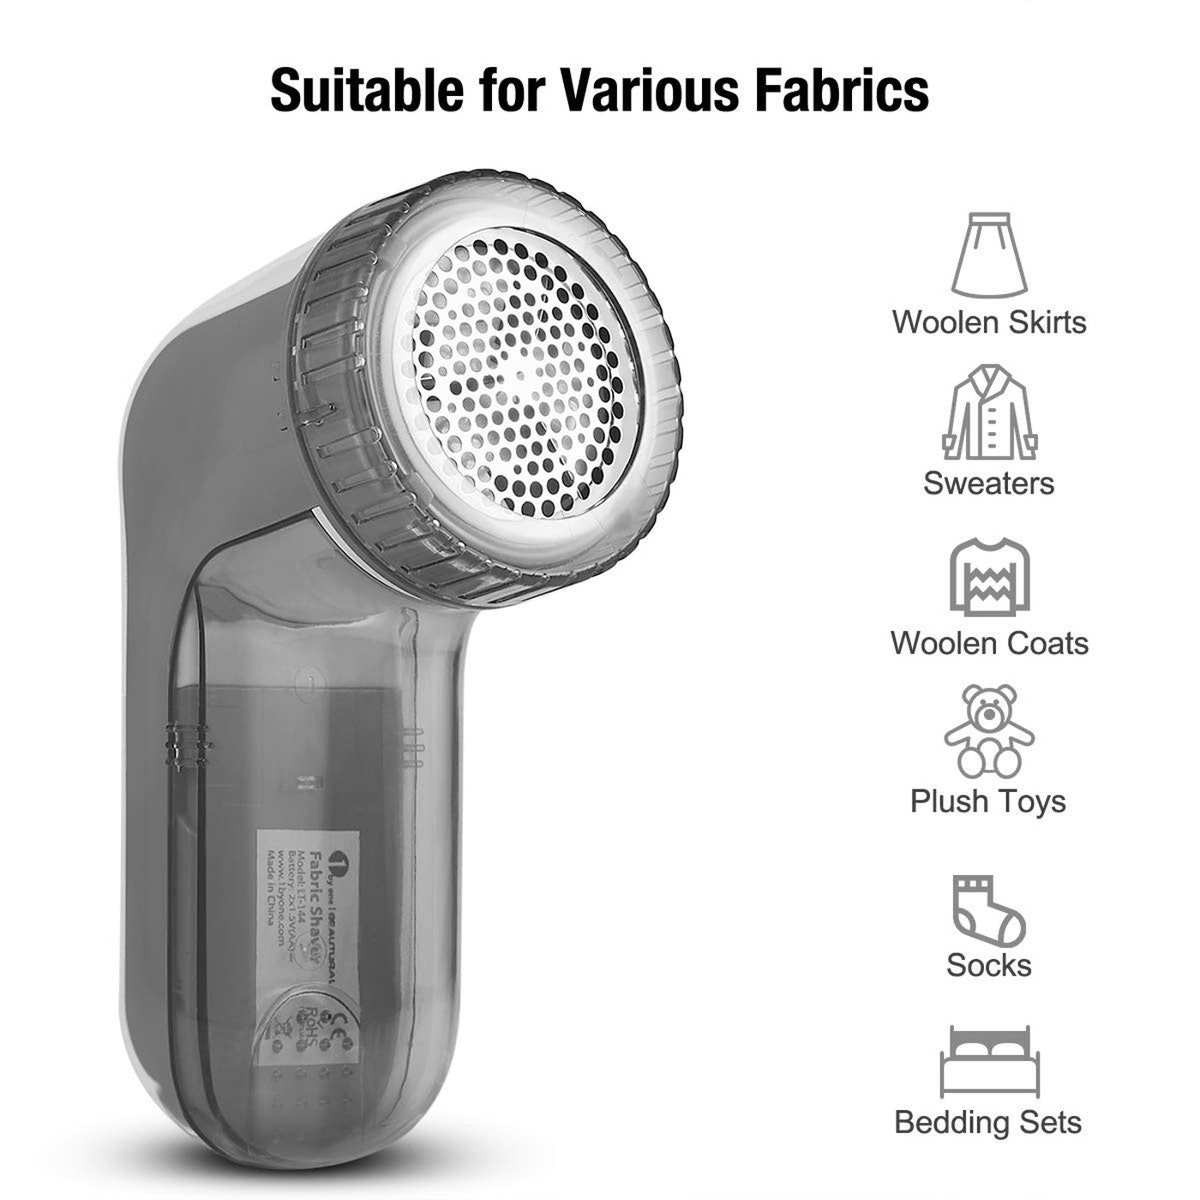 1byone Beautural Portable Fabric Shaver and Lint Remover